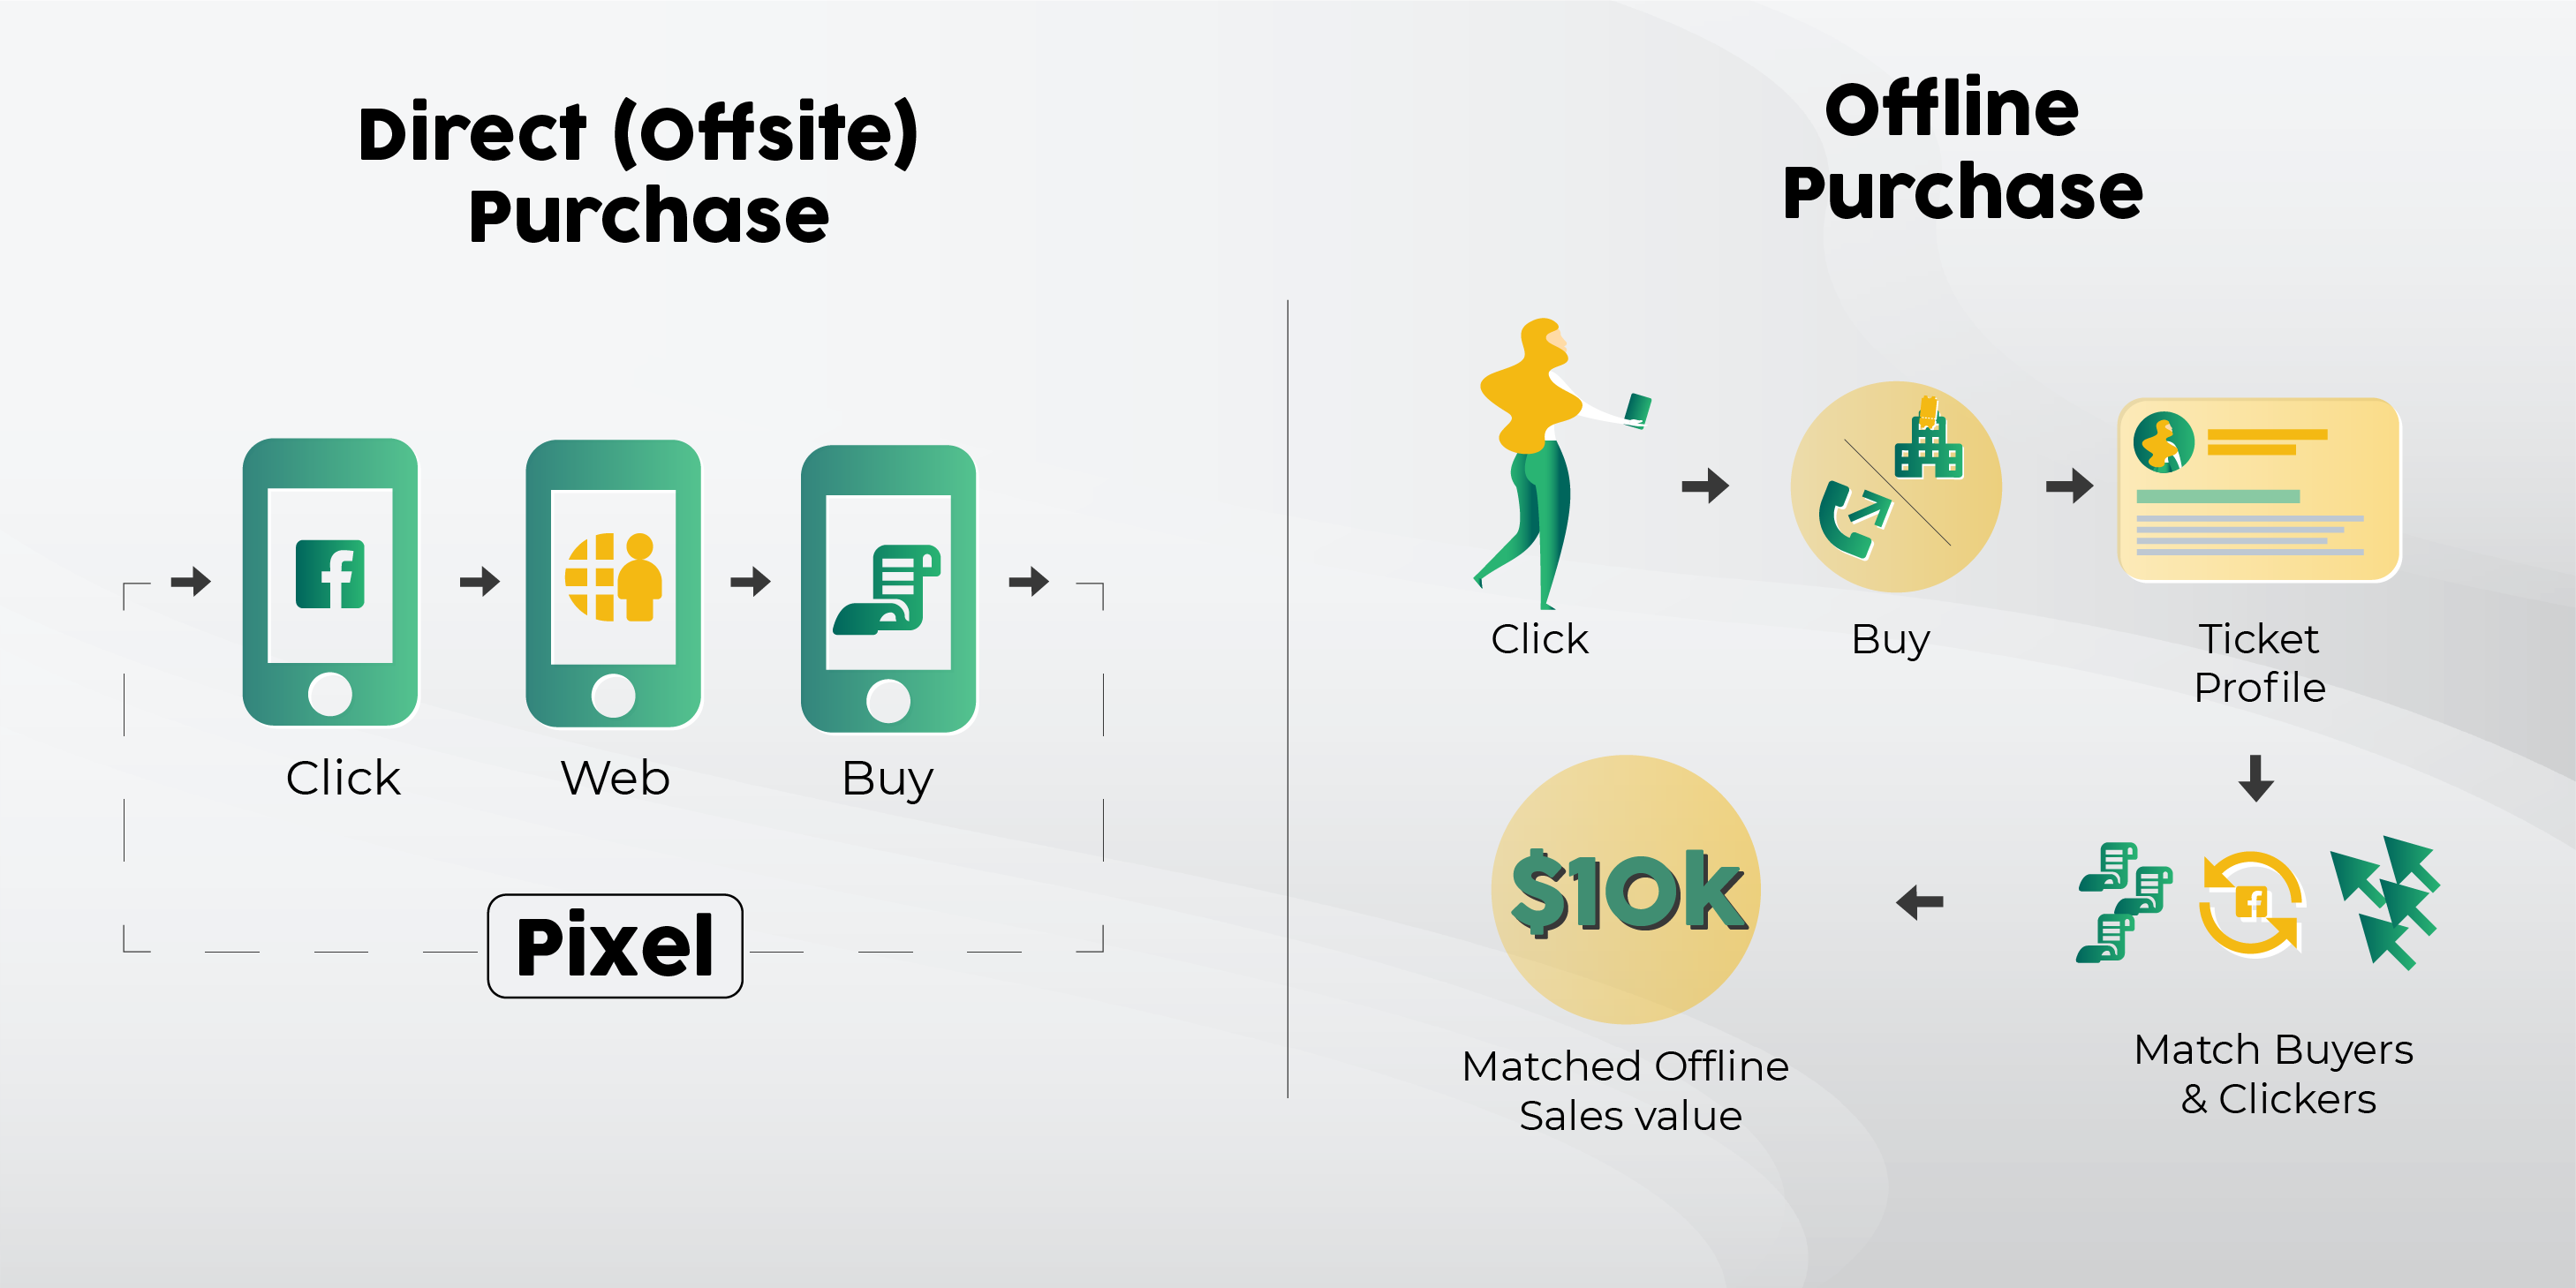 Direct Offsite Conversions versus Offline Conversions Explanation by Tradable Bits